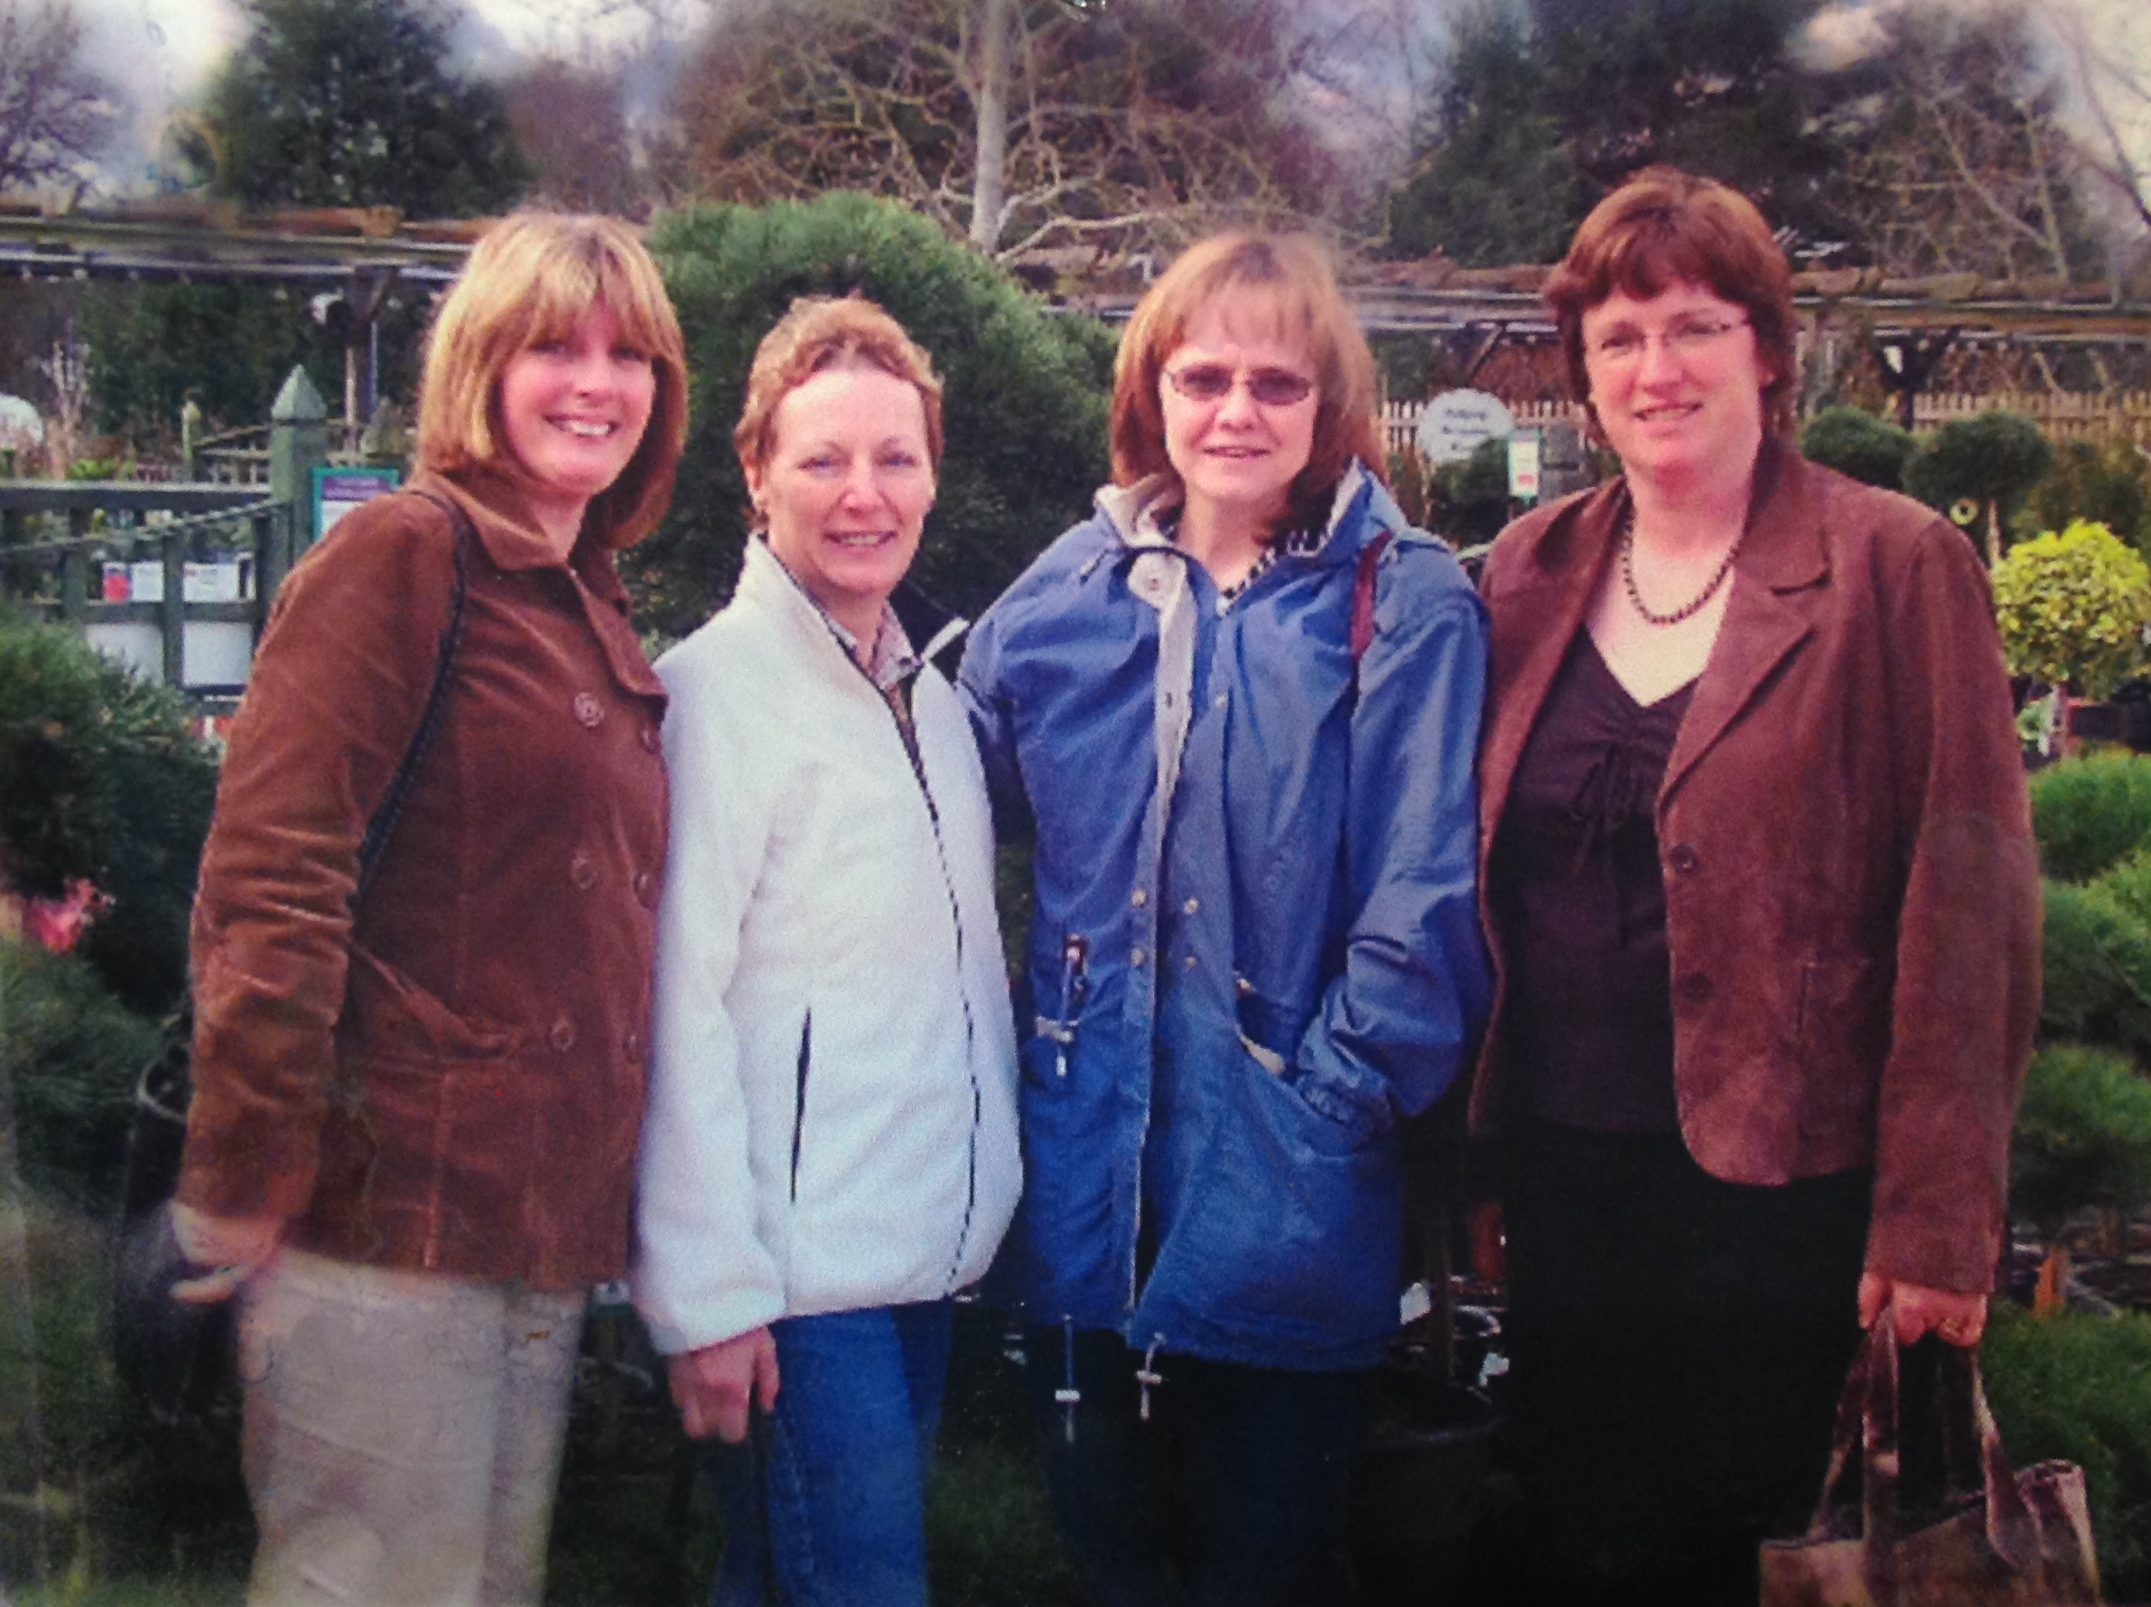 Eileen, Kathryn, me and Doranne on a visit back to England - my wonderful British friends.